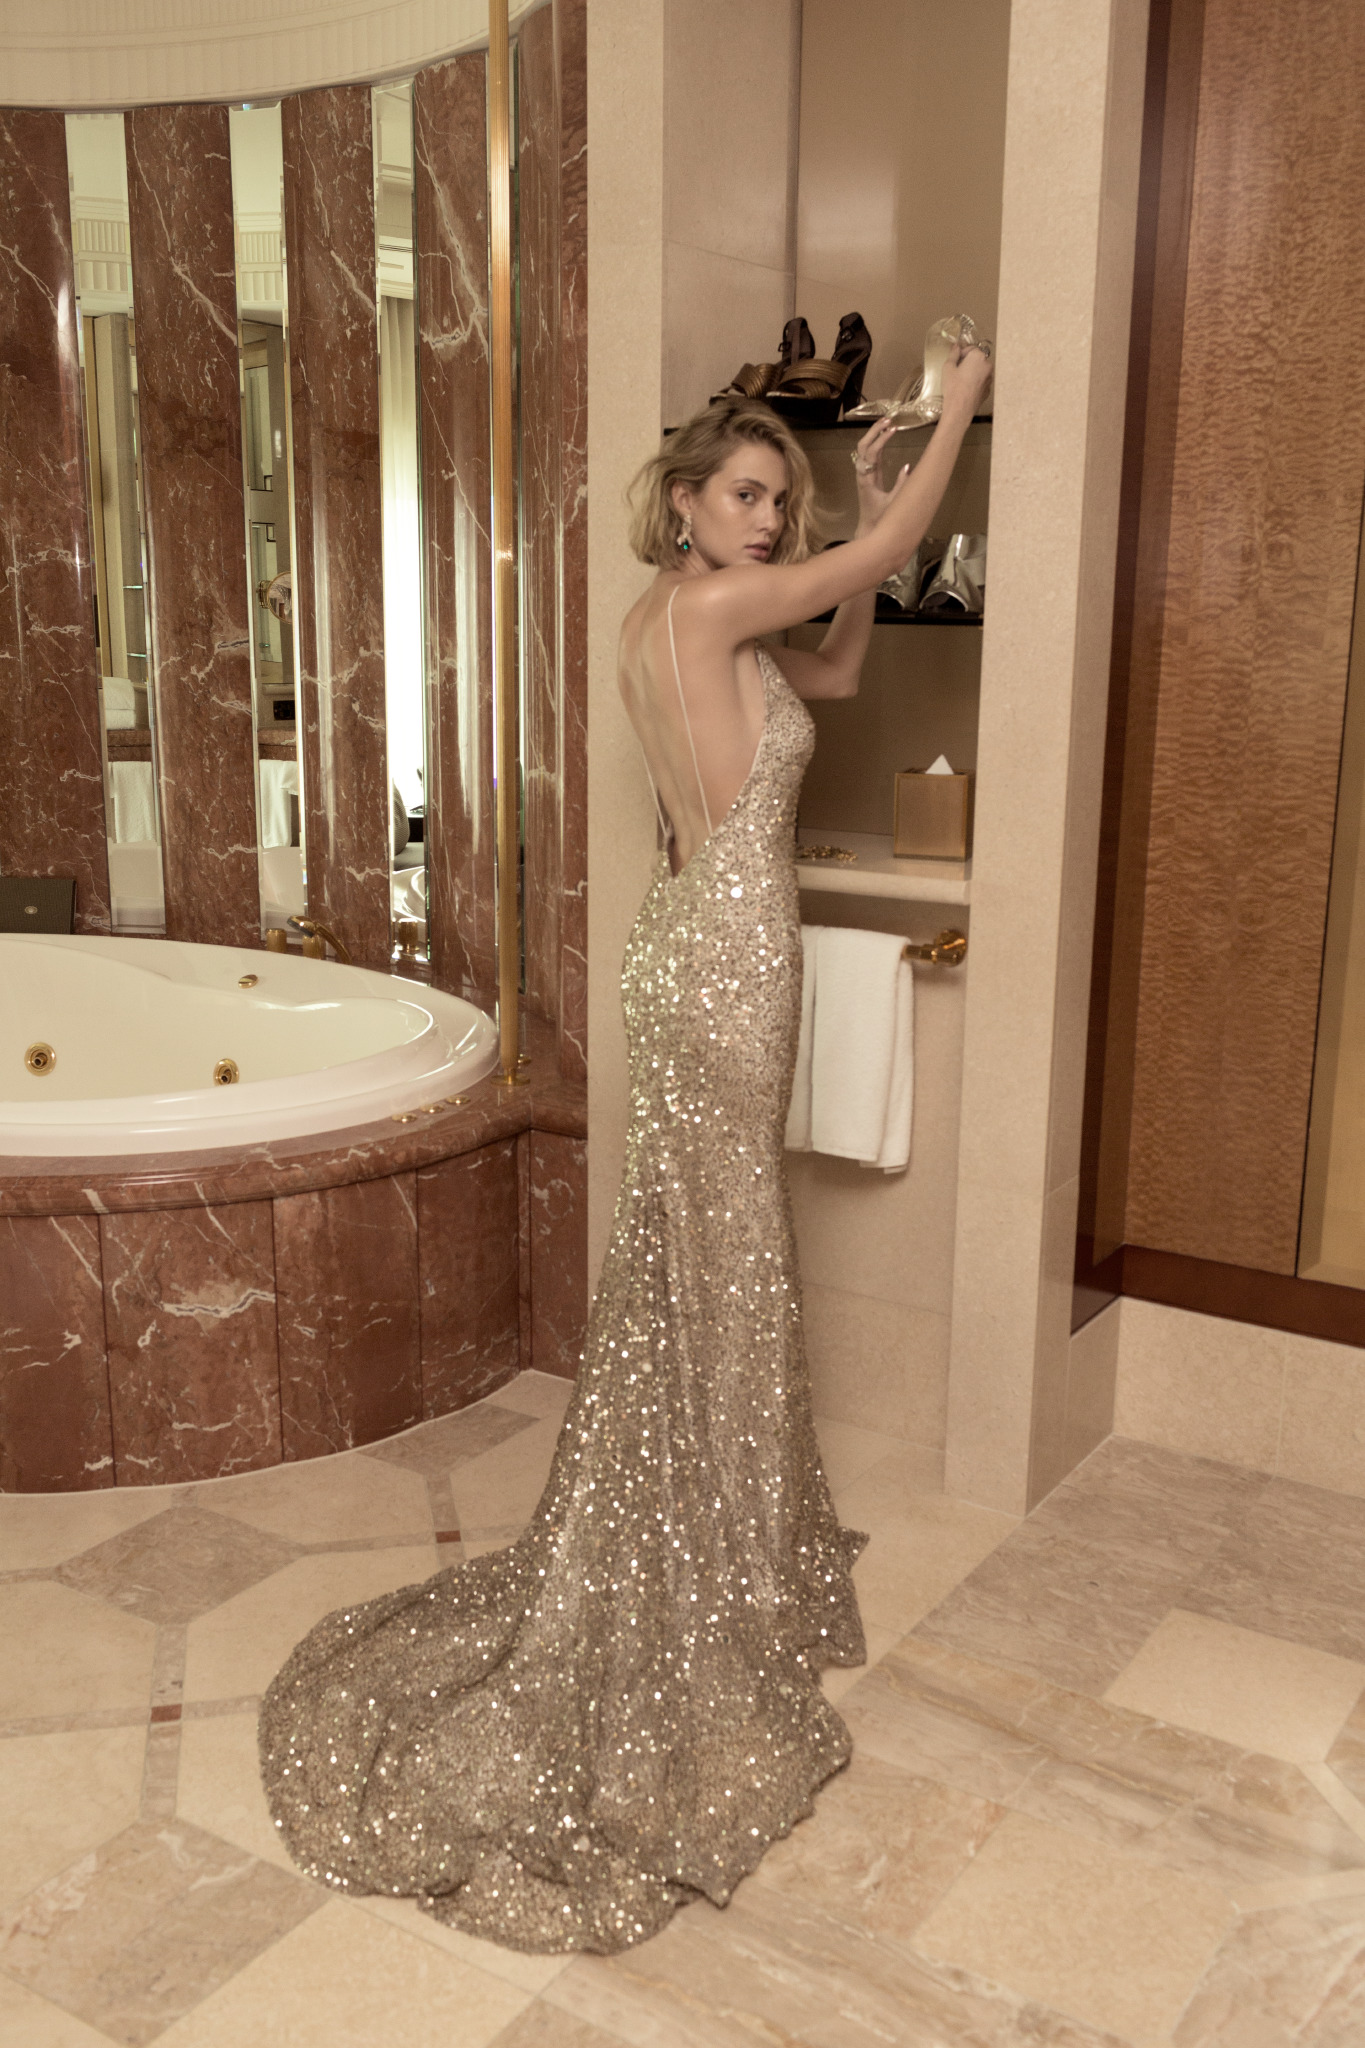 onedaybridal-1985-wedding-dress-collection-scout (1)_preview.jpeg